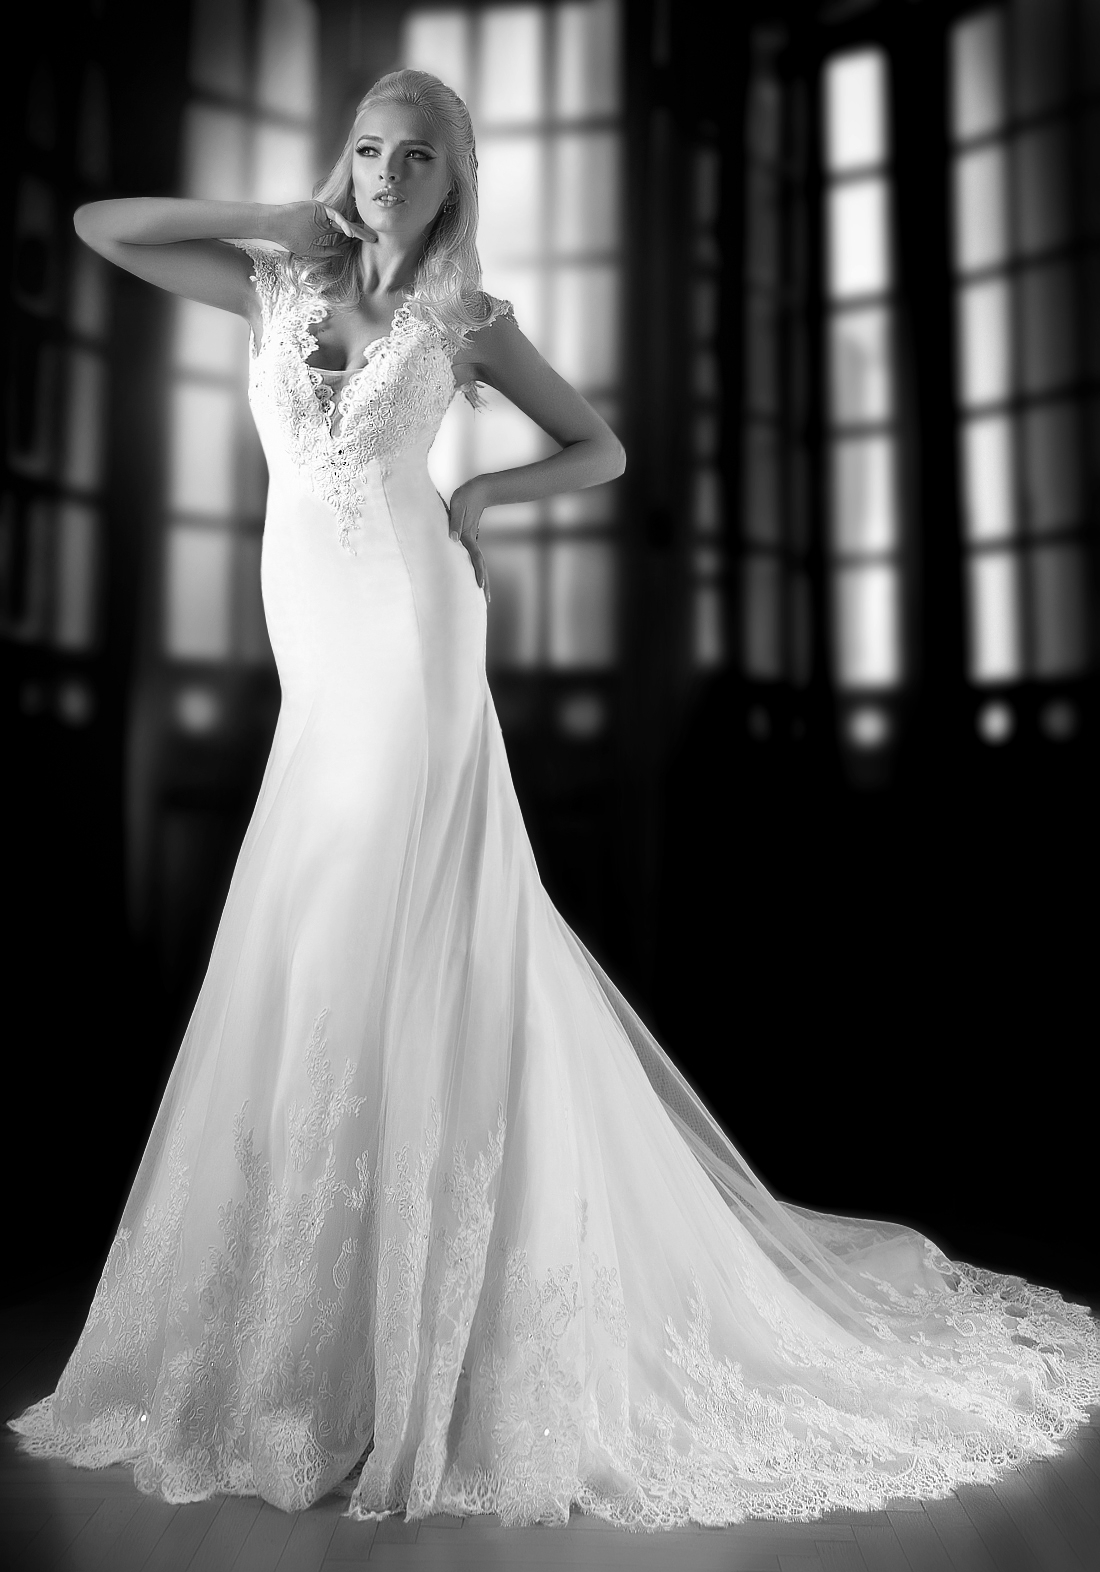 bien-savvy-wedding-dresses-2014-collection-16-01232014